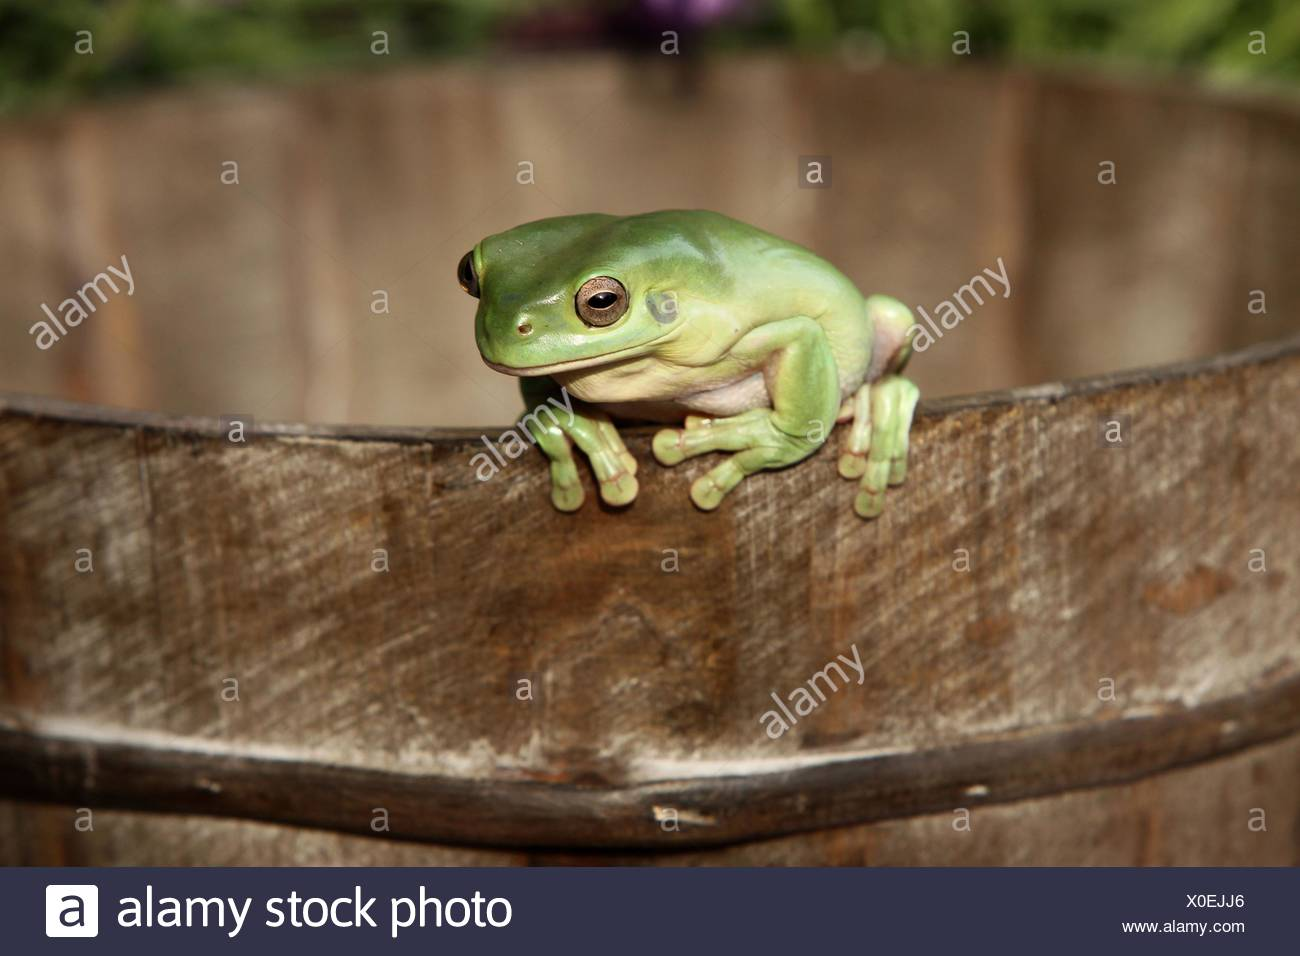 Australian green tree frog - Stock Image